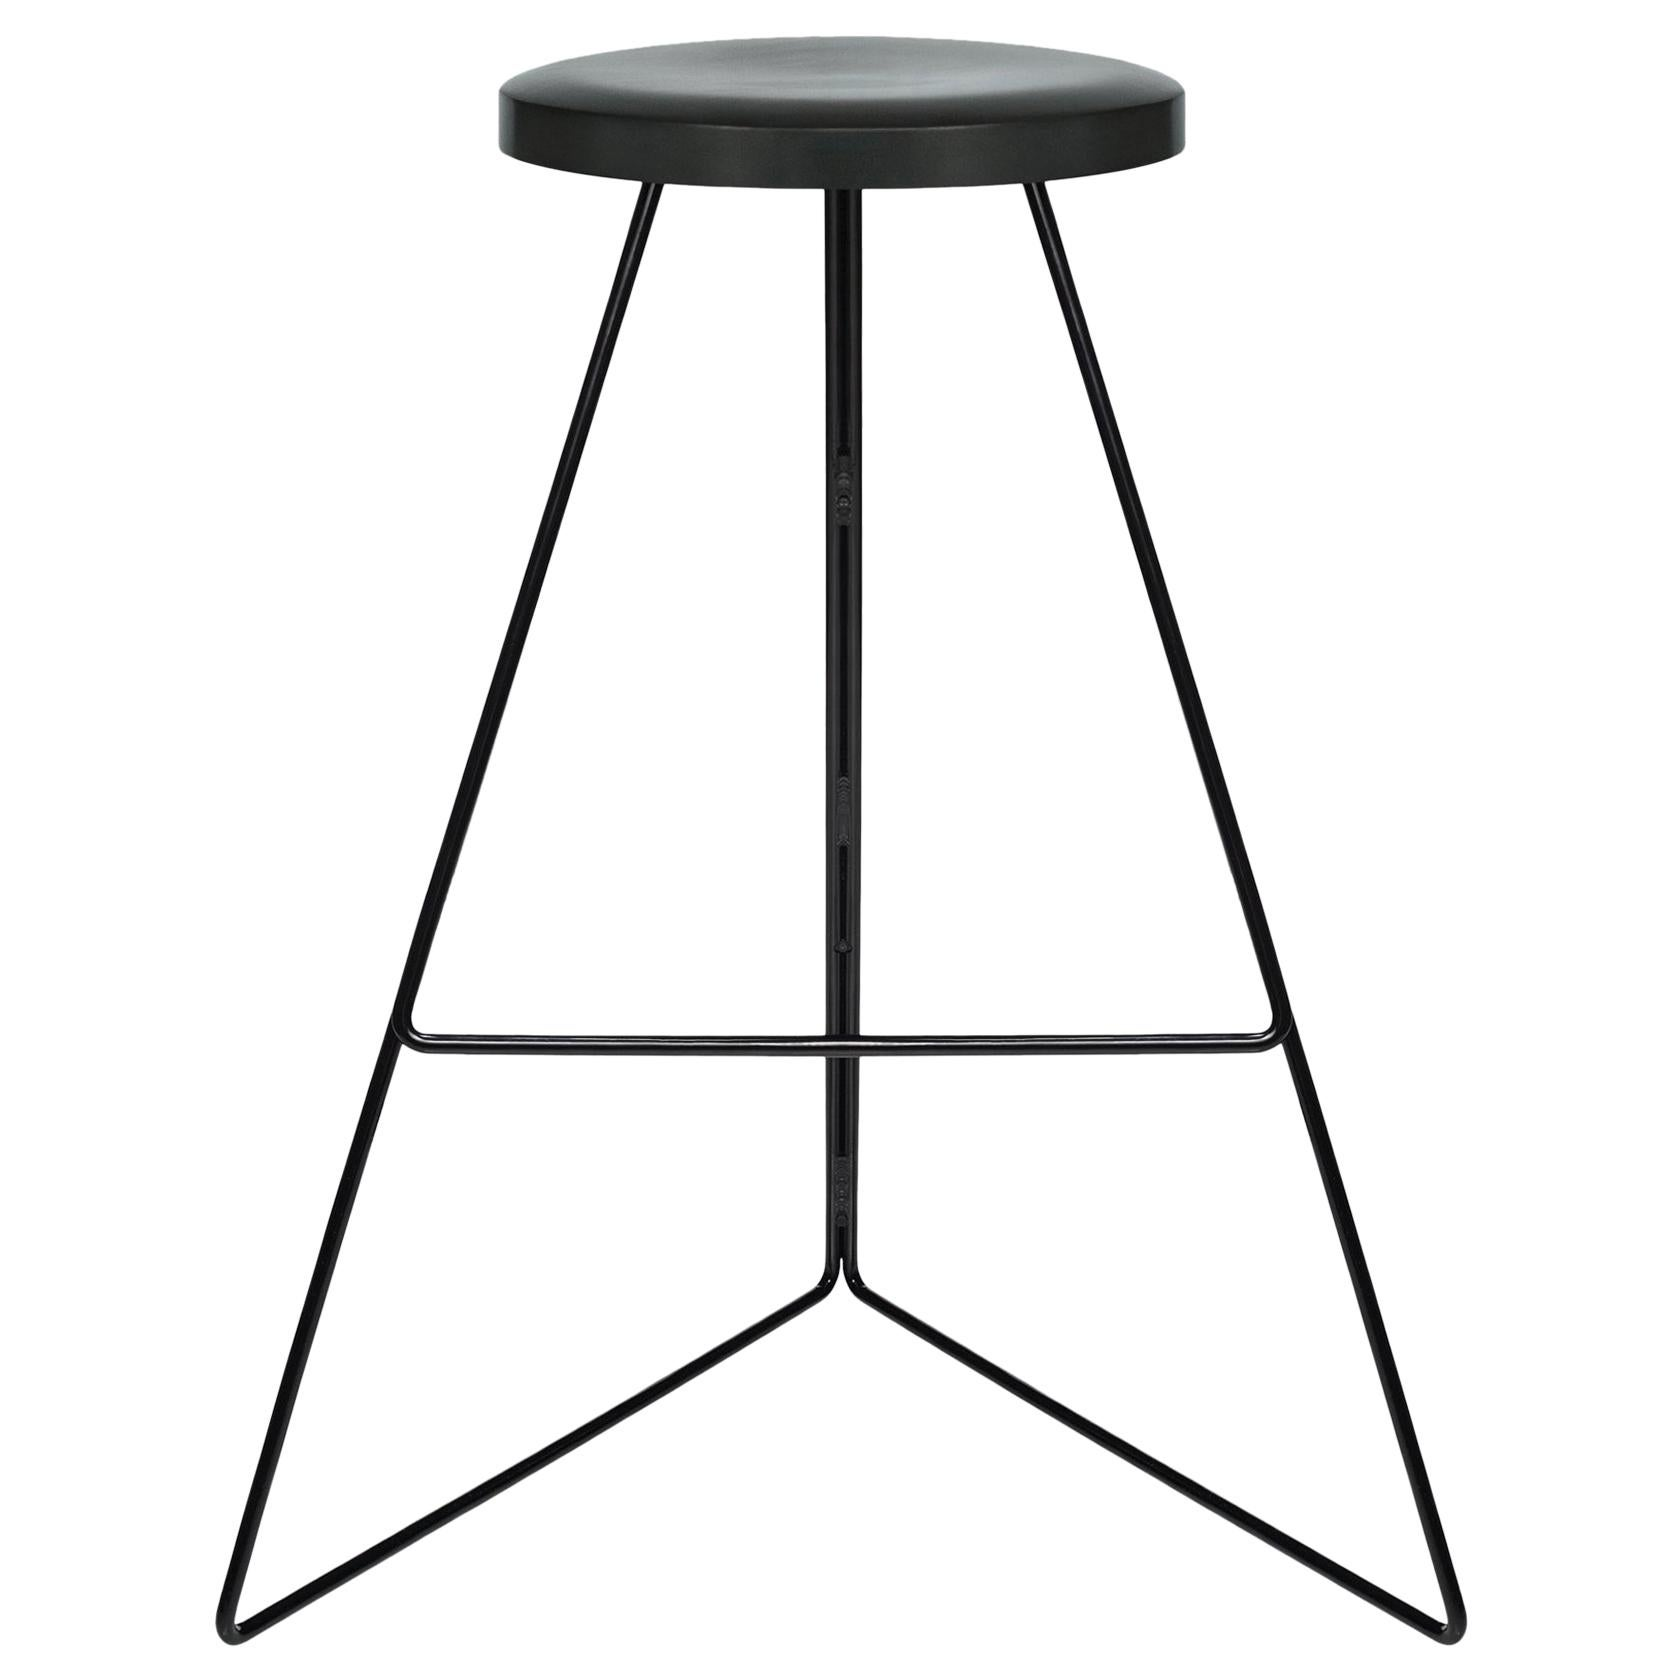 Coleman Stool, Black and Charcoal, 54 Variations